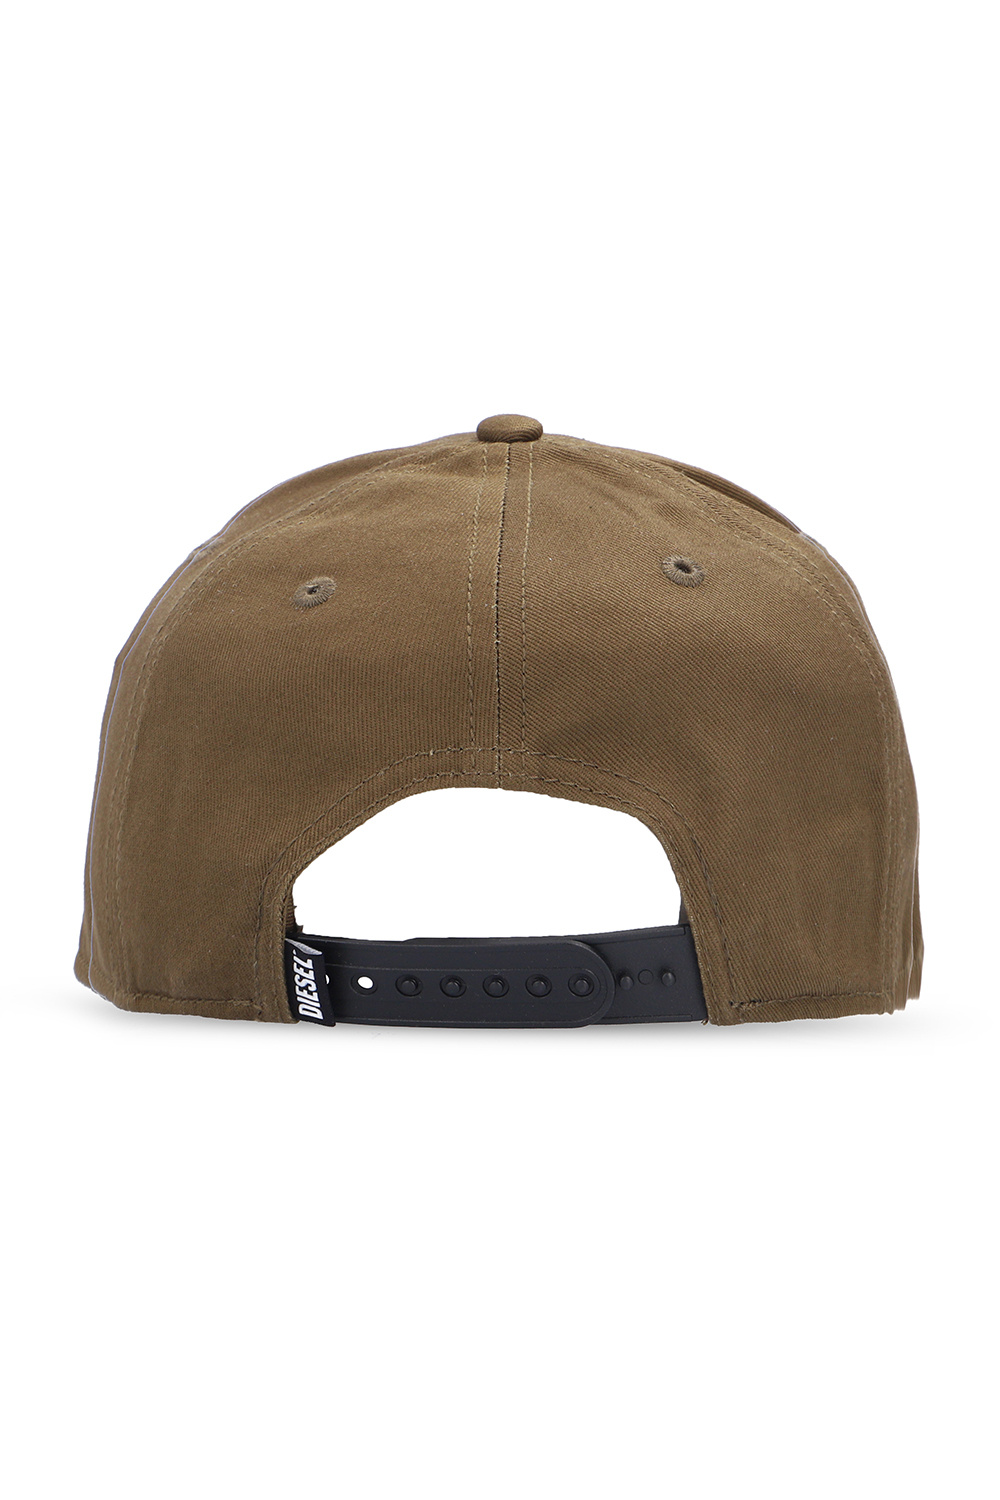 Diesel Logo-patched baseball cap